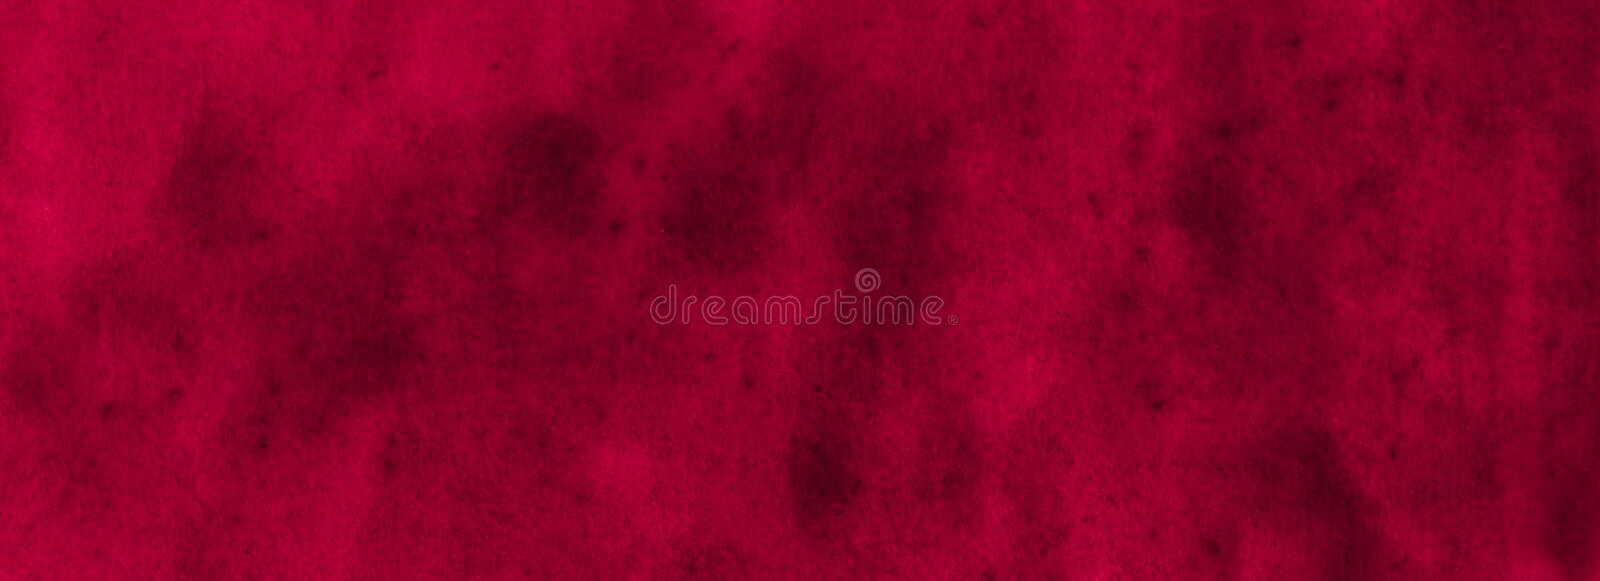 Rich burgundy watercolor frame with torn strokes and stripes. Abstract background for design, layouts, patterns royalty free stock photos